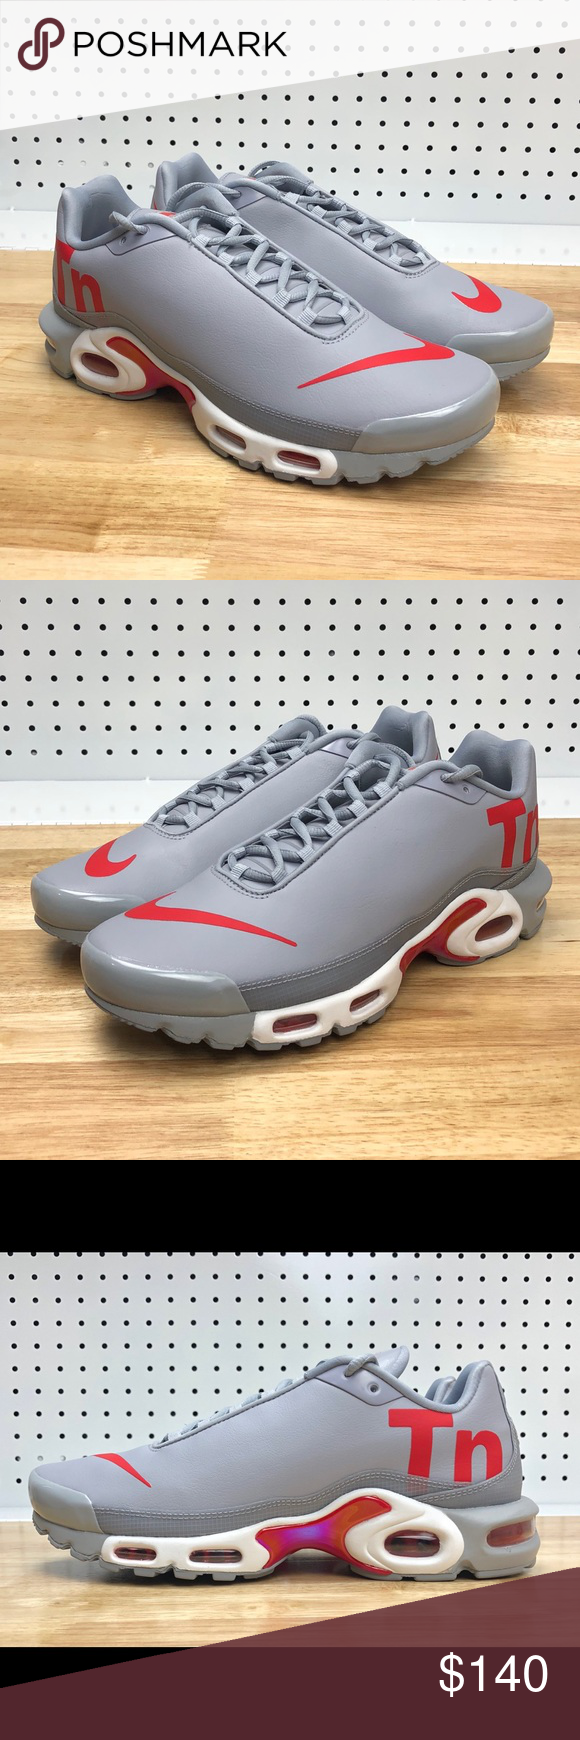 9ee41d817cb1 Nike Air Max Plus TN Mercurial Wolf Grey Red Sz 11 Nike Air Max Plus ...